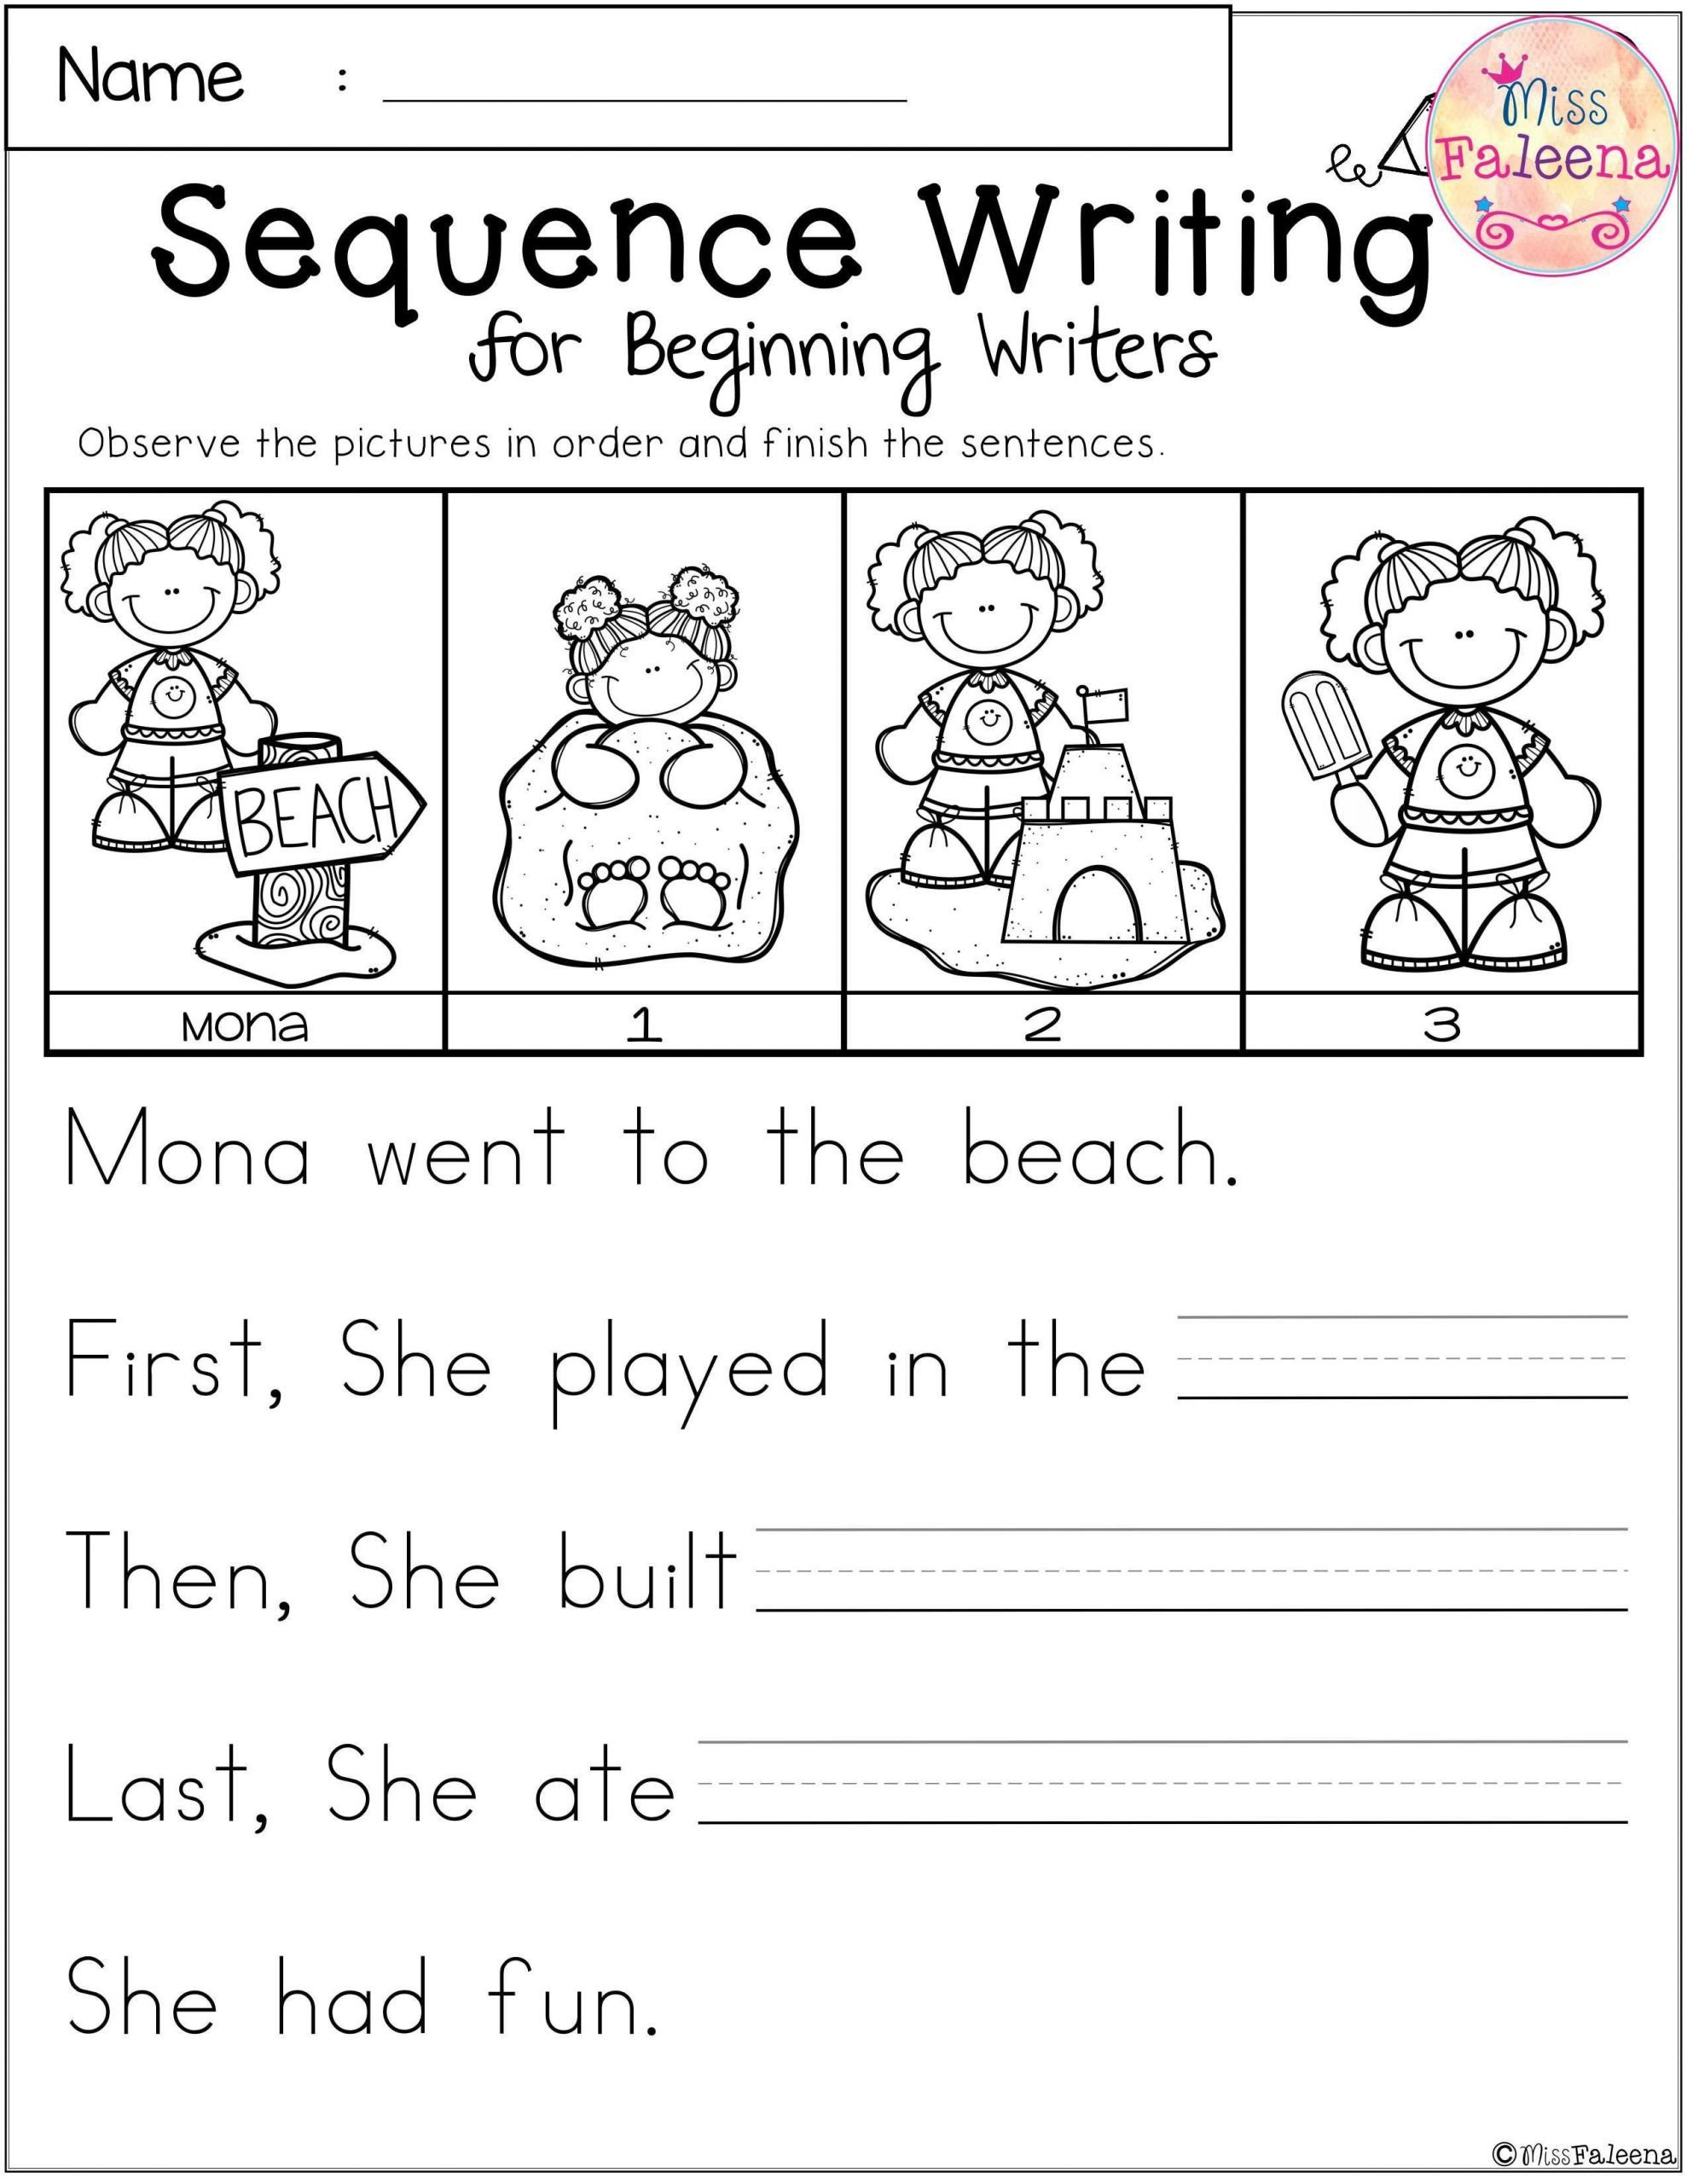 Free Printable Story Sequencing Worksheets 20 Sequencing Worksheets for Kindergarten